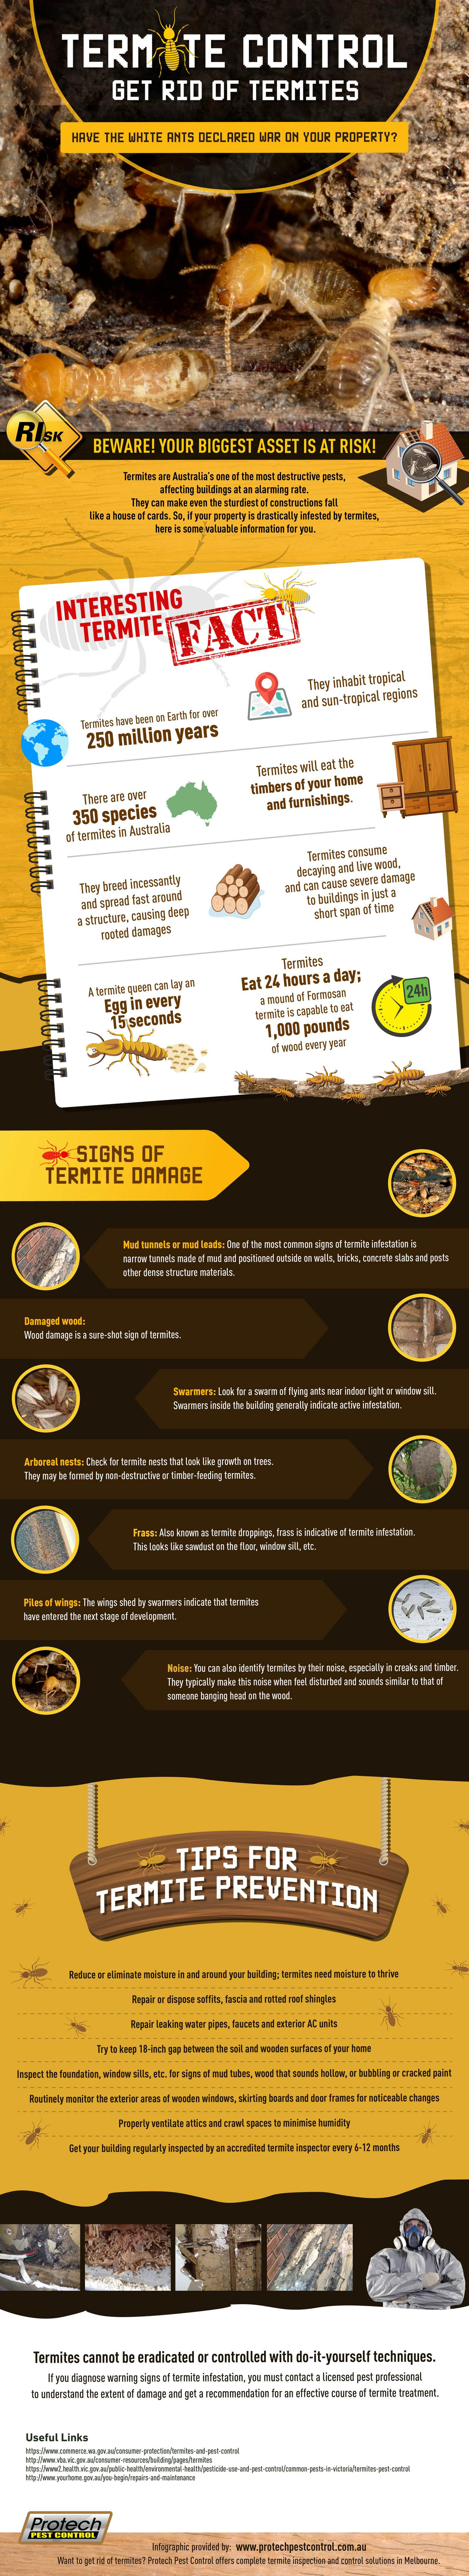 Termite Control: How to Get Rid of Termites